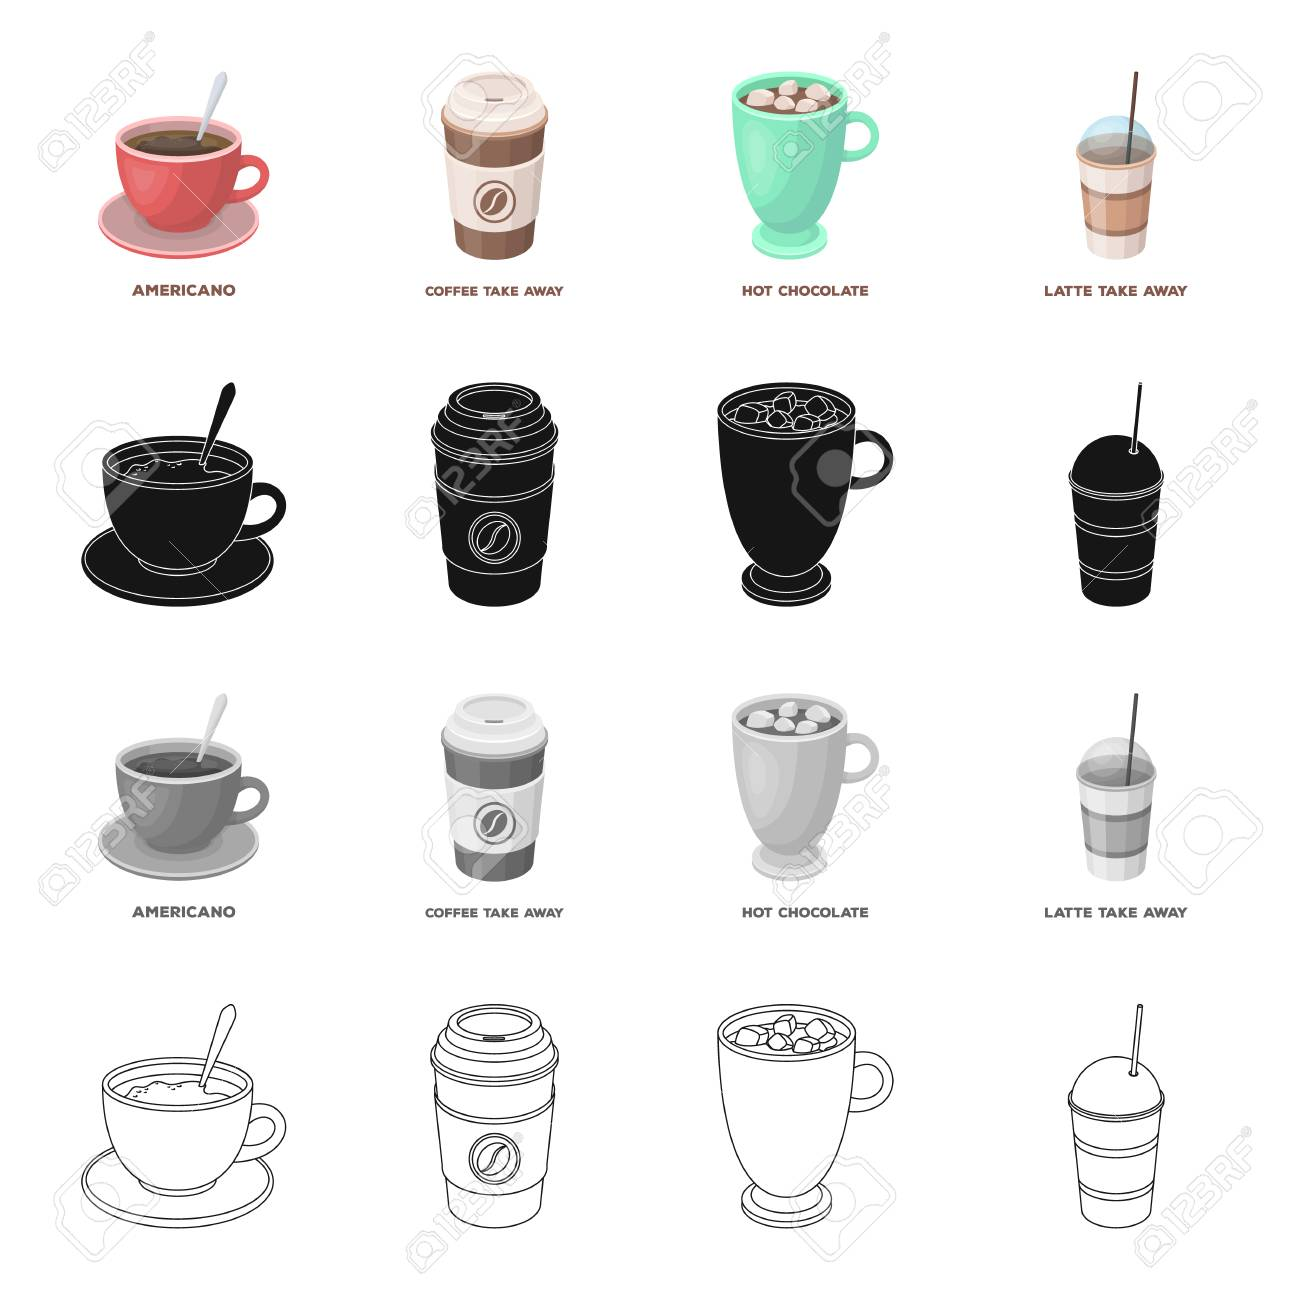 Crockery Kitchen Sets And Other Web Icon In Cartoon Style